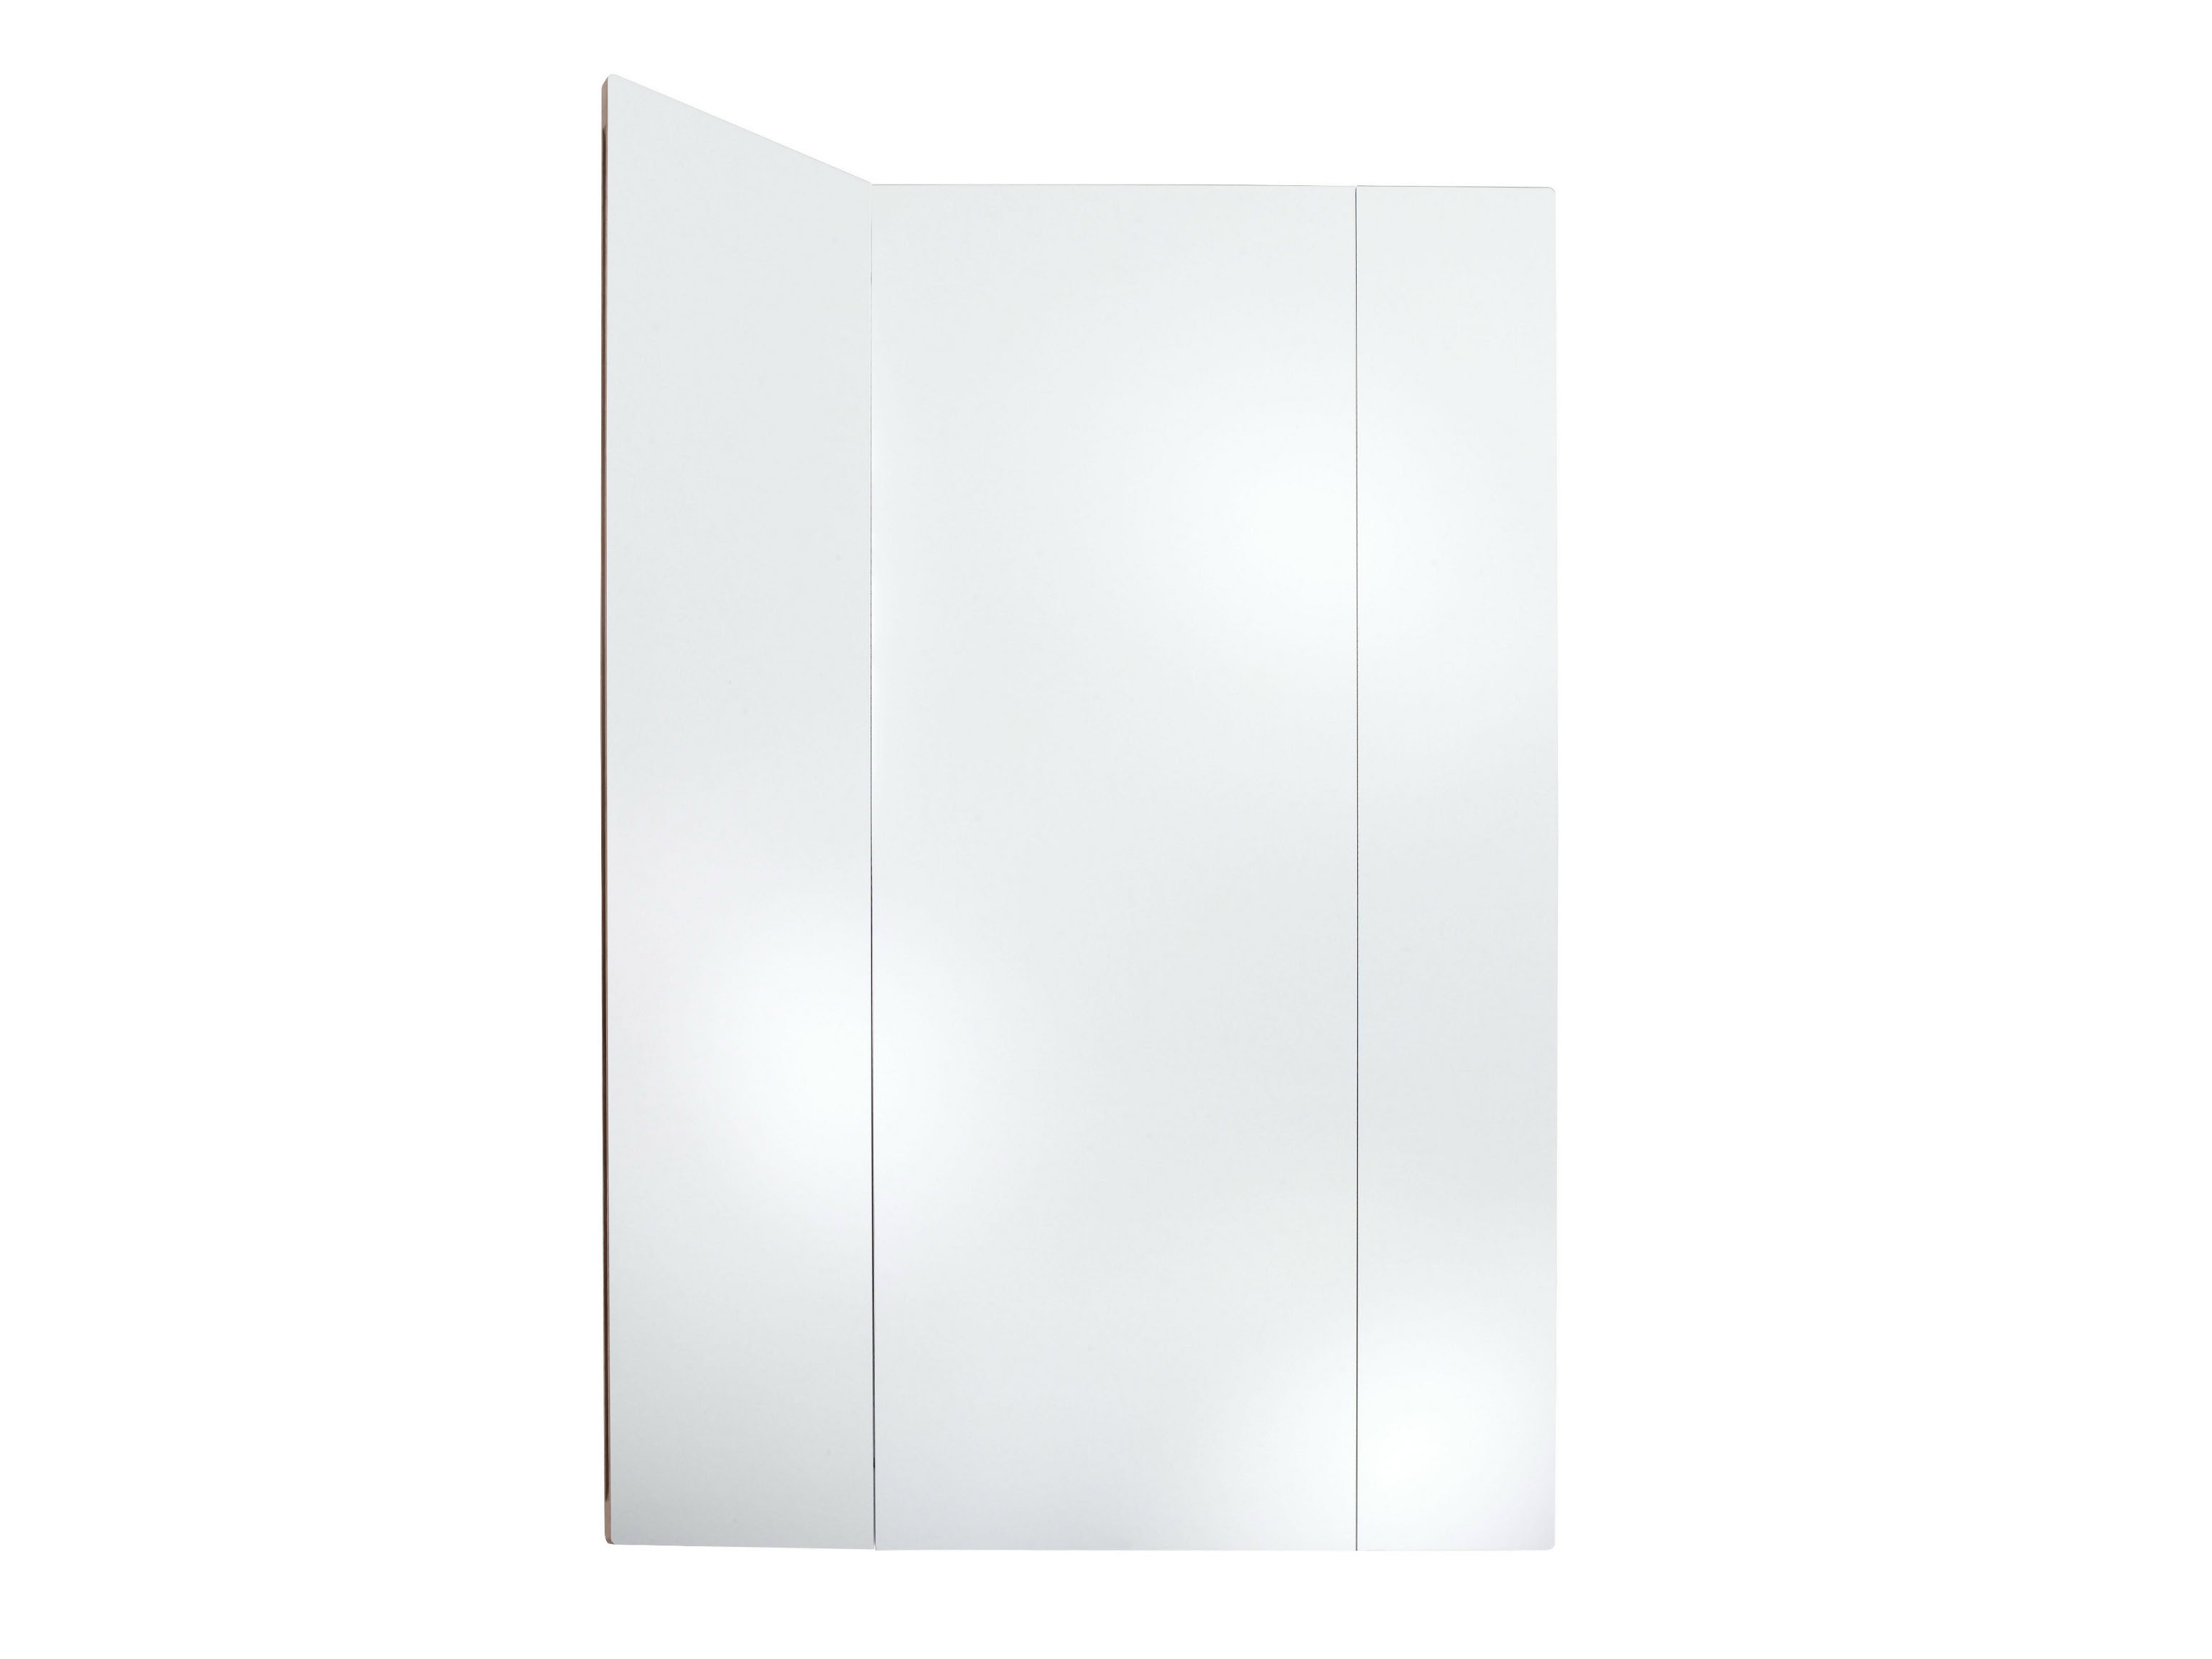 Miroir rectangulaire mural adonis by roset italia design for Miroir rectangulaire design